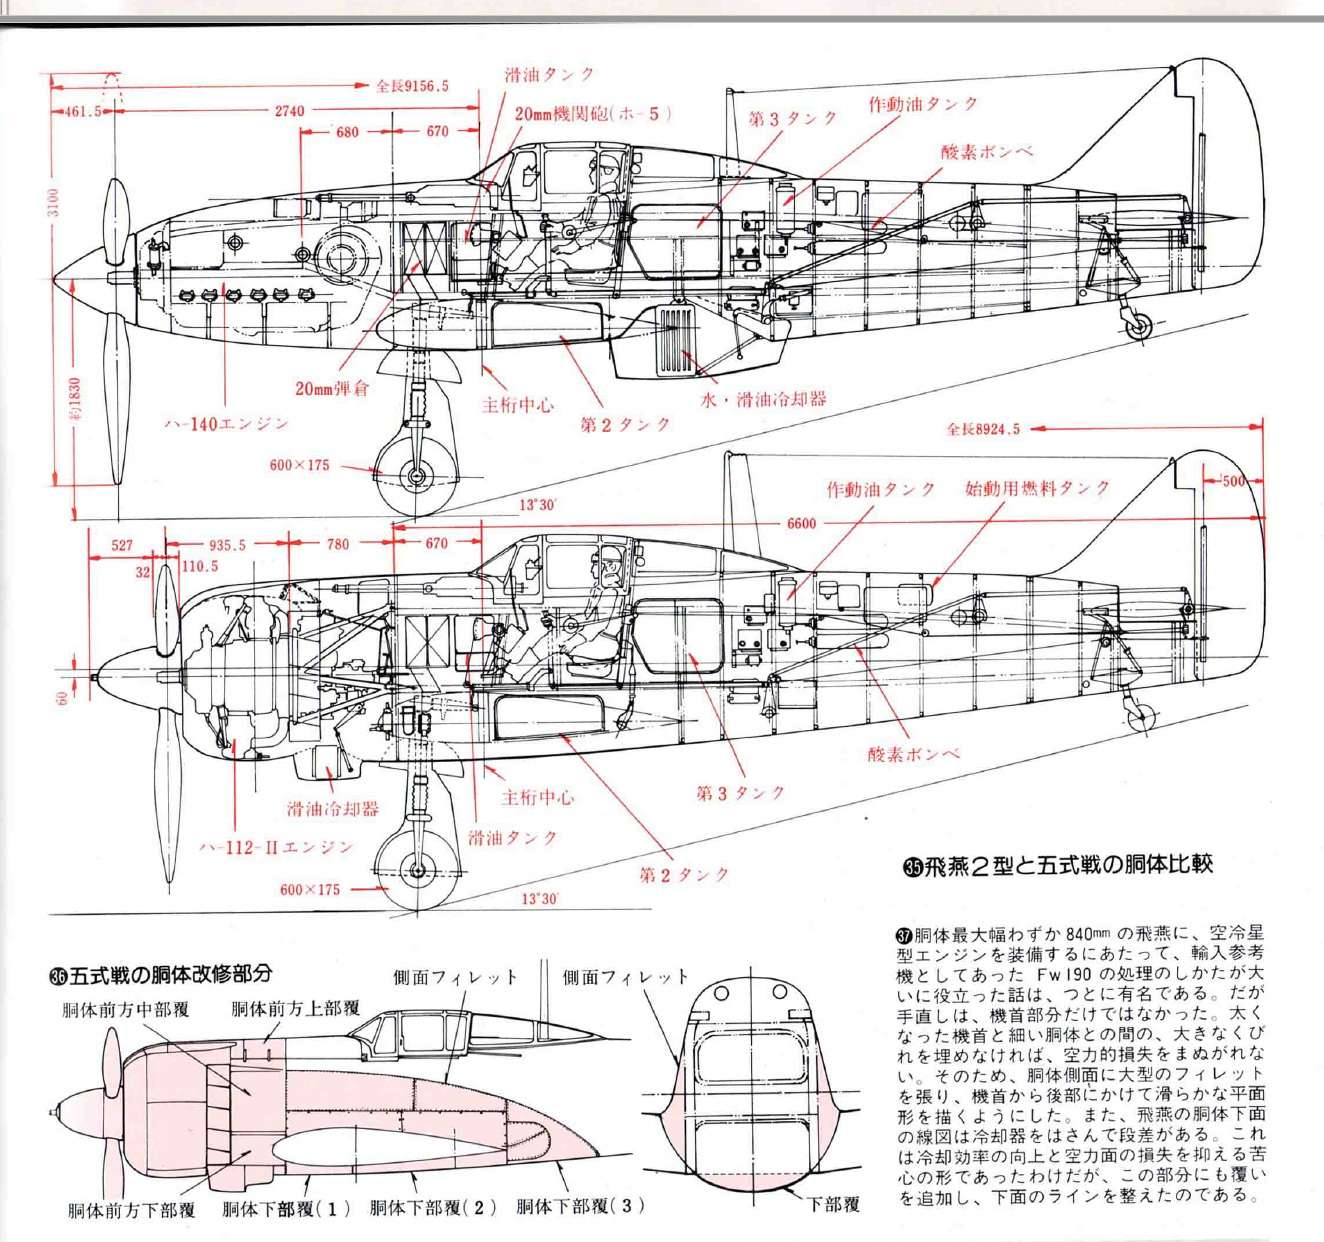 Japanese Wiring Diagram Kawasaki Km 100 Detailed Schematics G5 Ki 60 61 Ijaaf Fighters Page 2 Armchair 1982 Kz1300 Diagrams